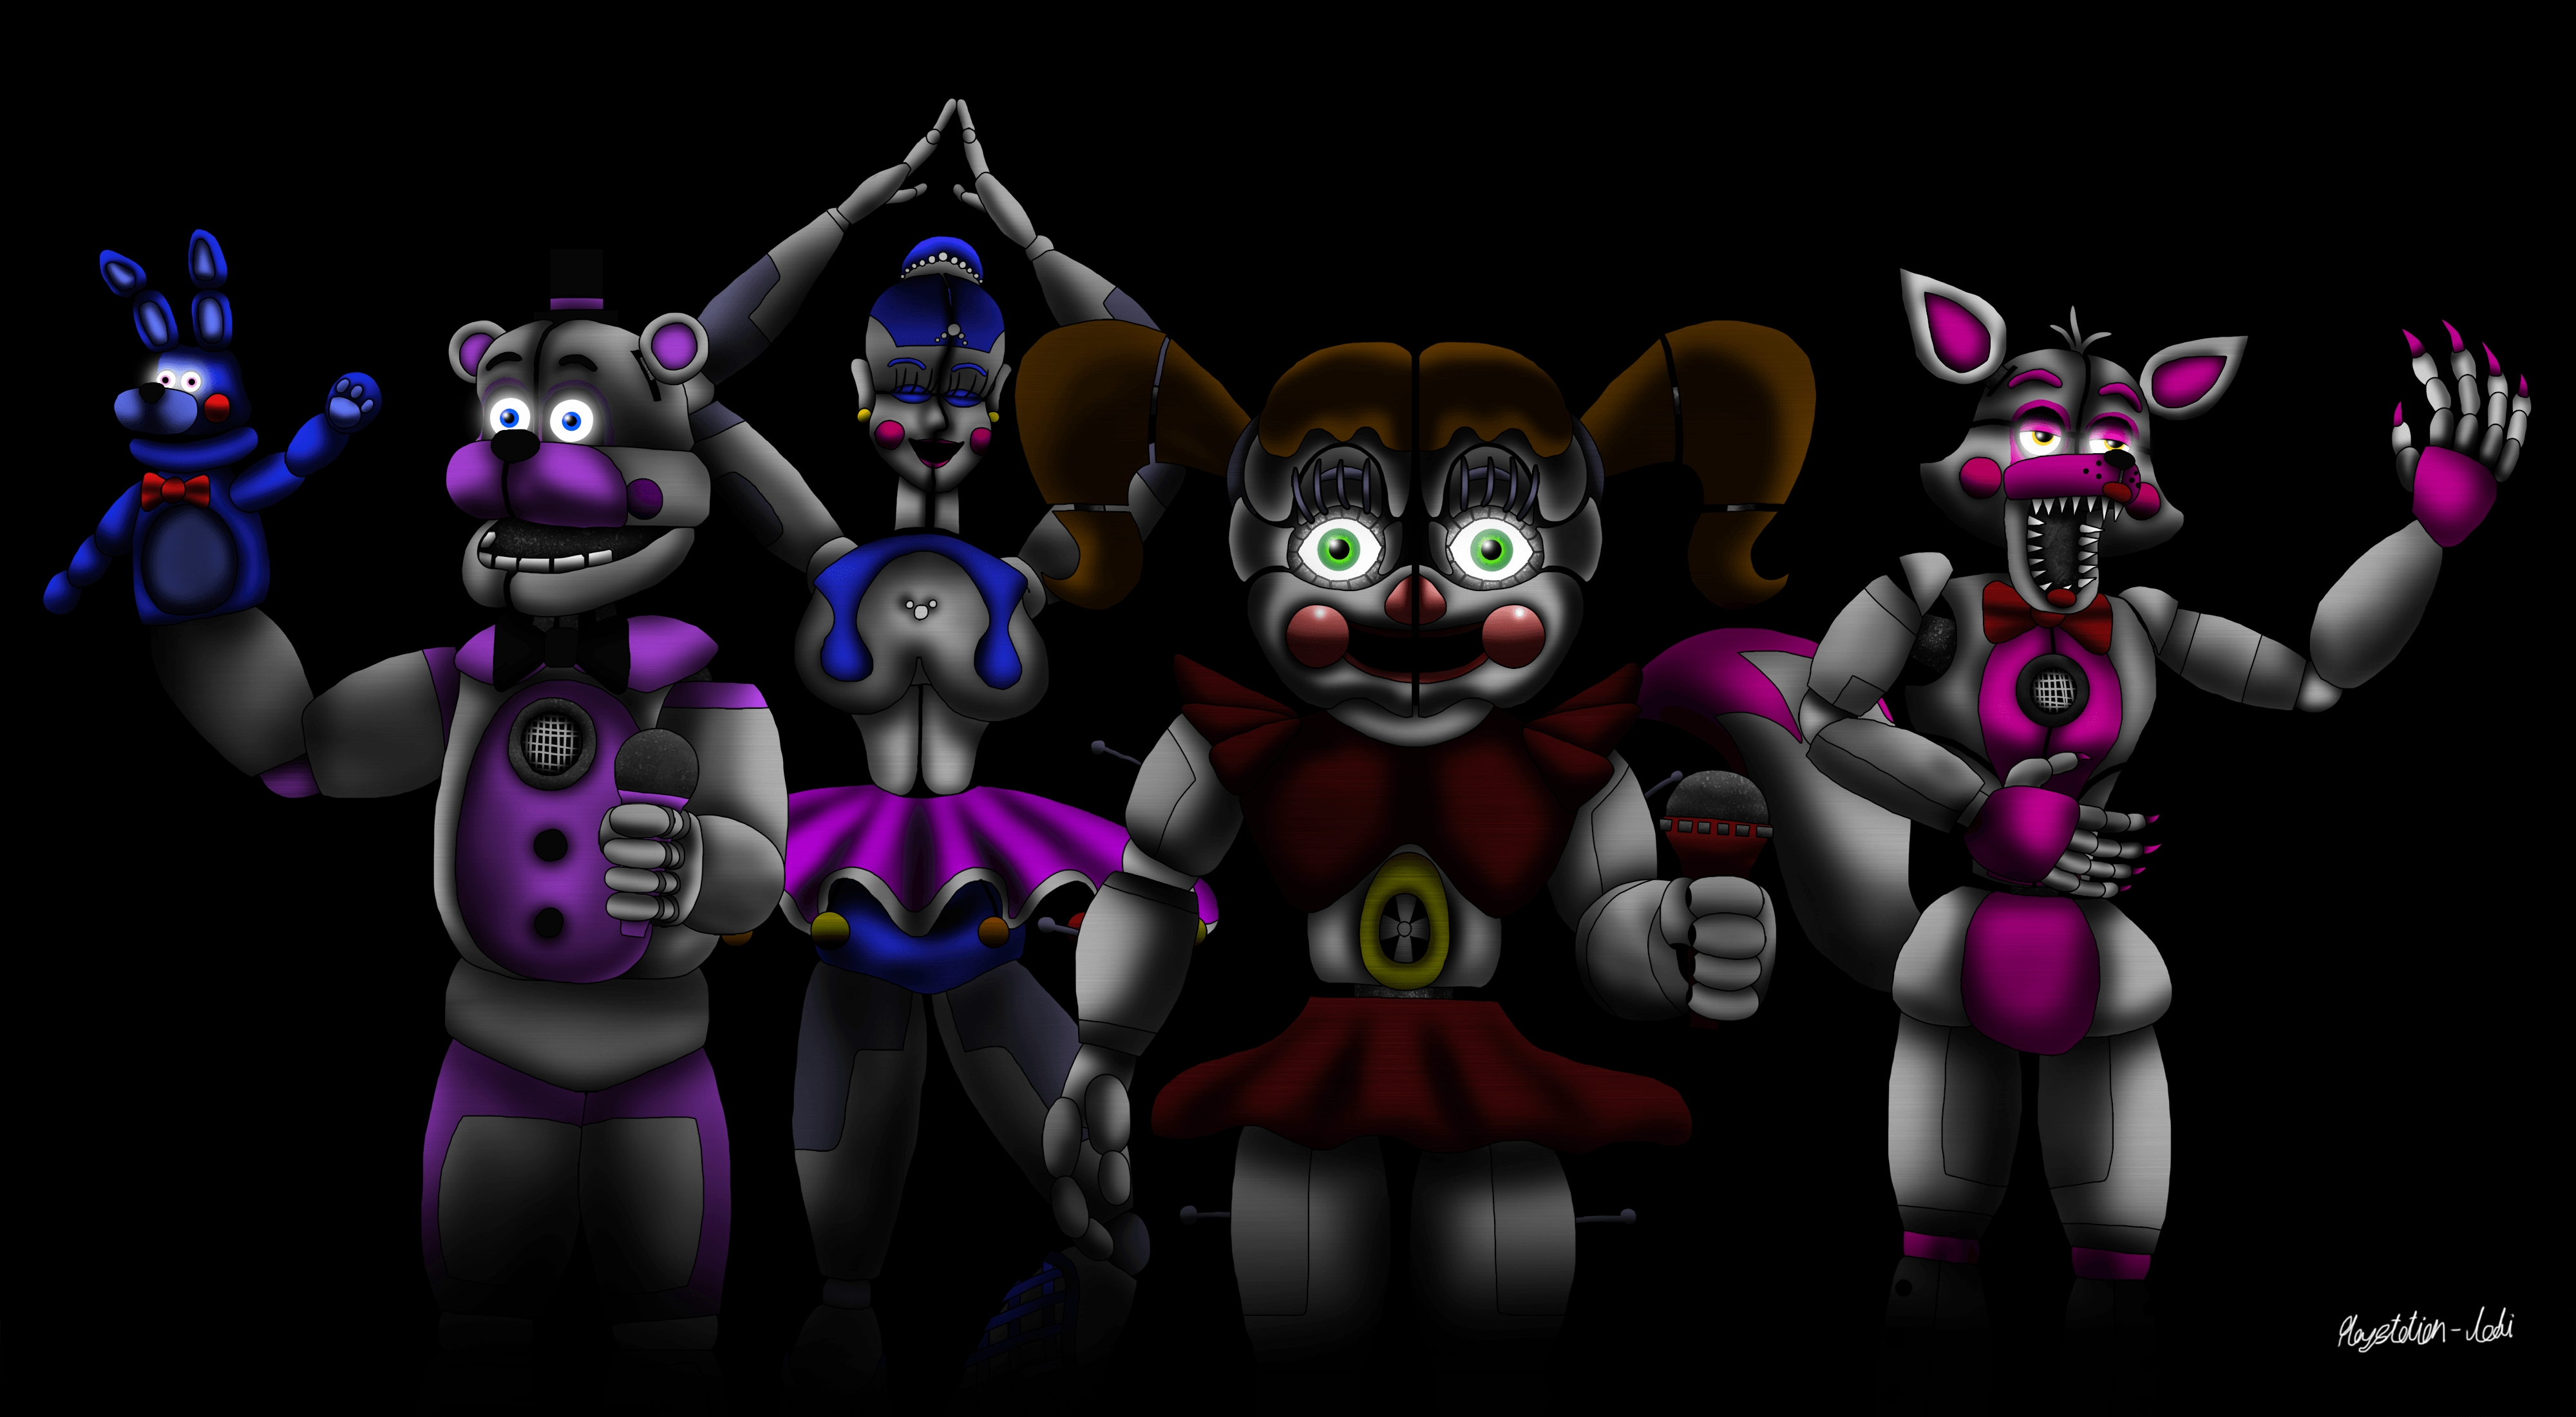 five nights at freddy's: sister location wallpapers - wallpaper cave